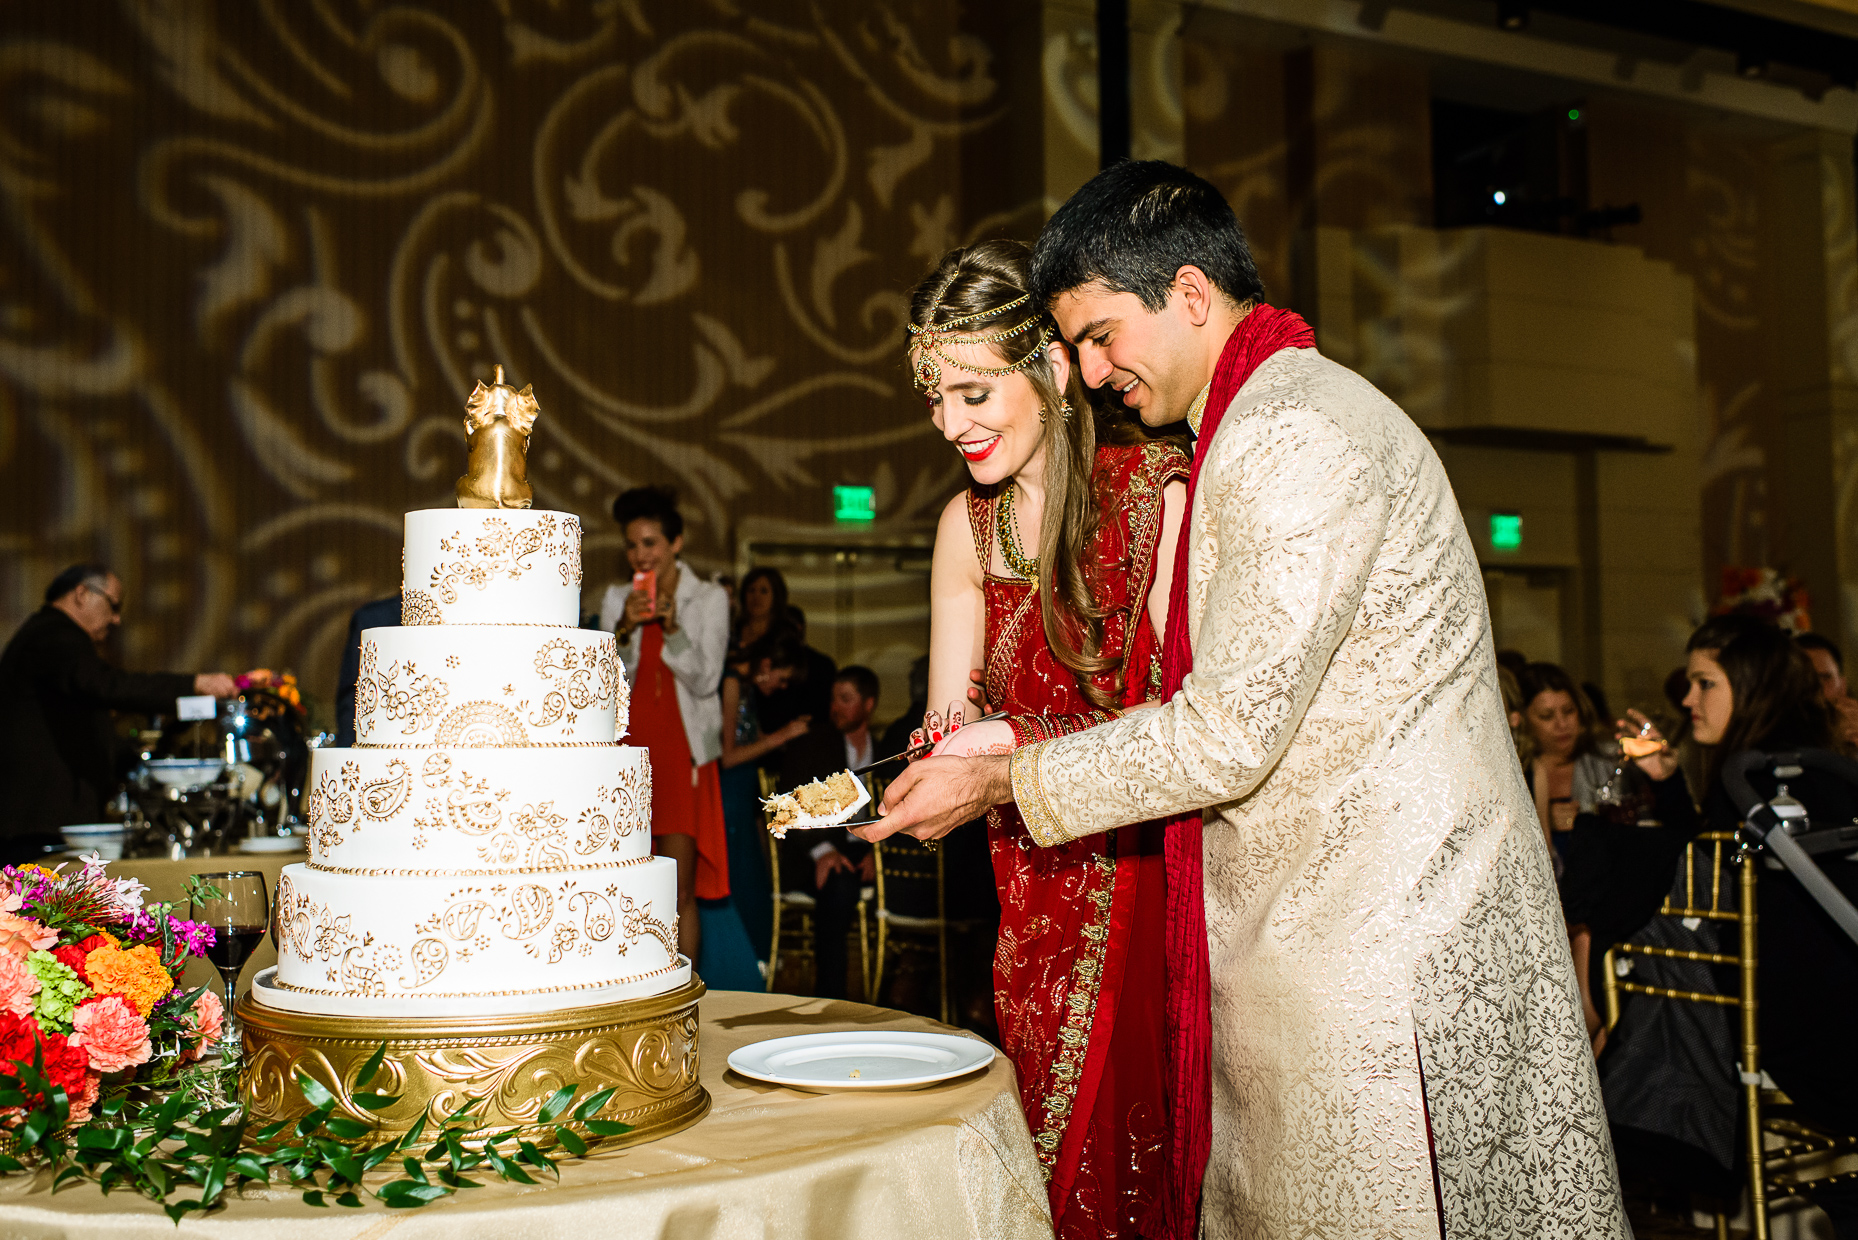 Austin-Indian-Wedding-Photographer-Lost-Pines-mehndi-cake-cutting